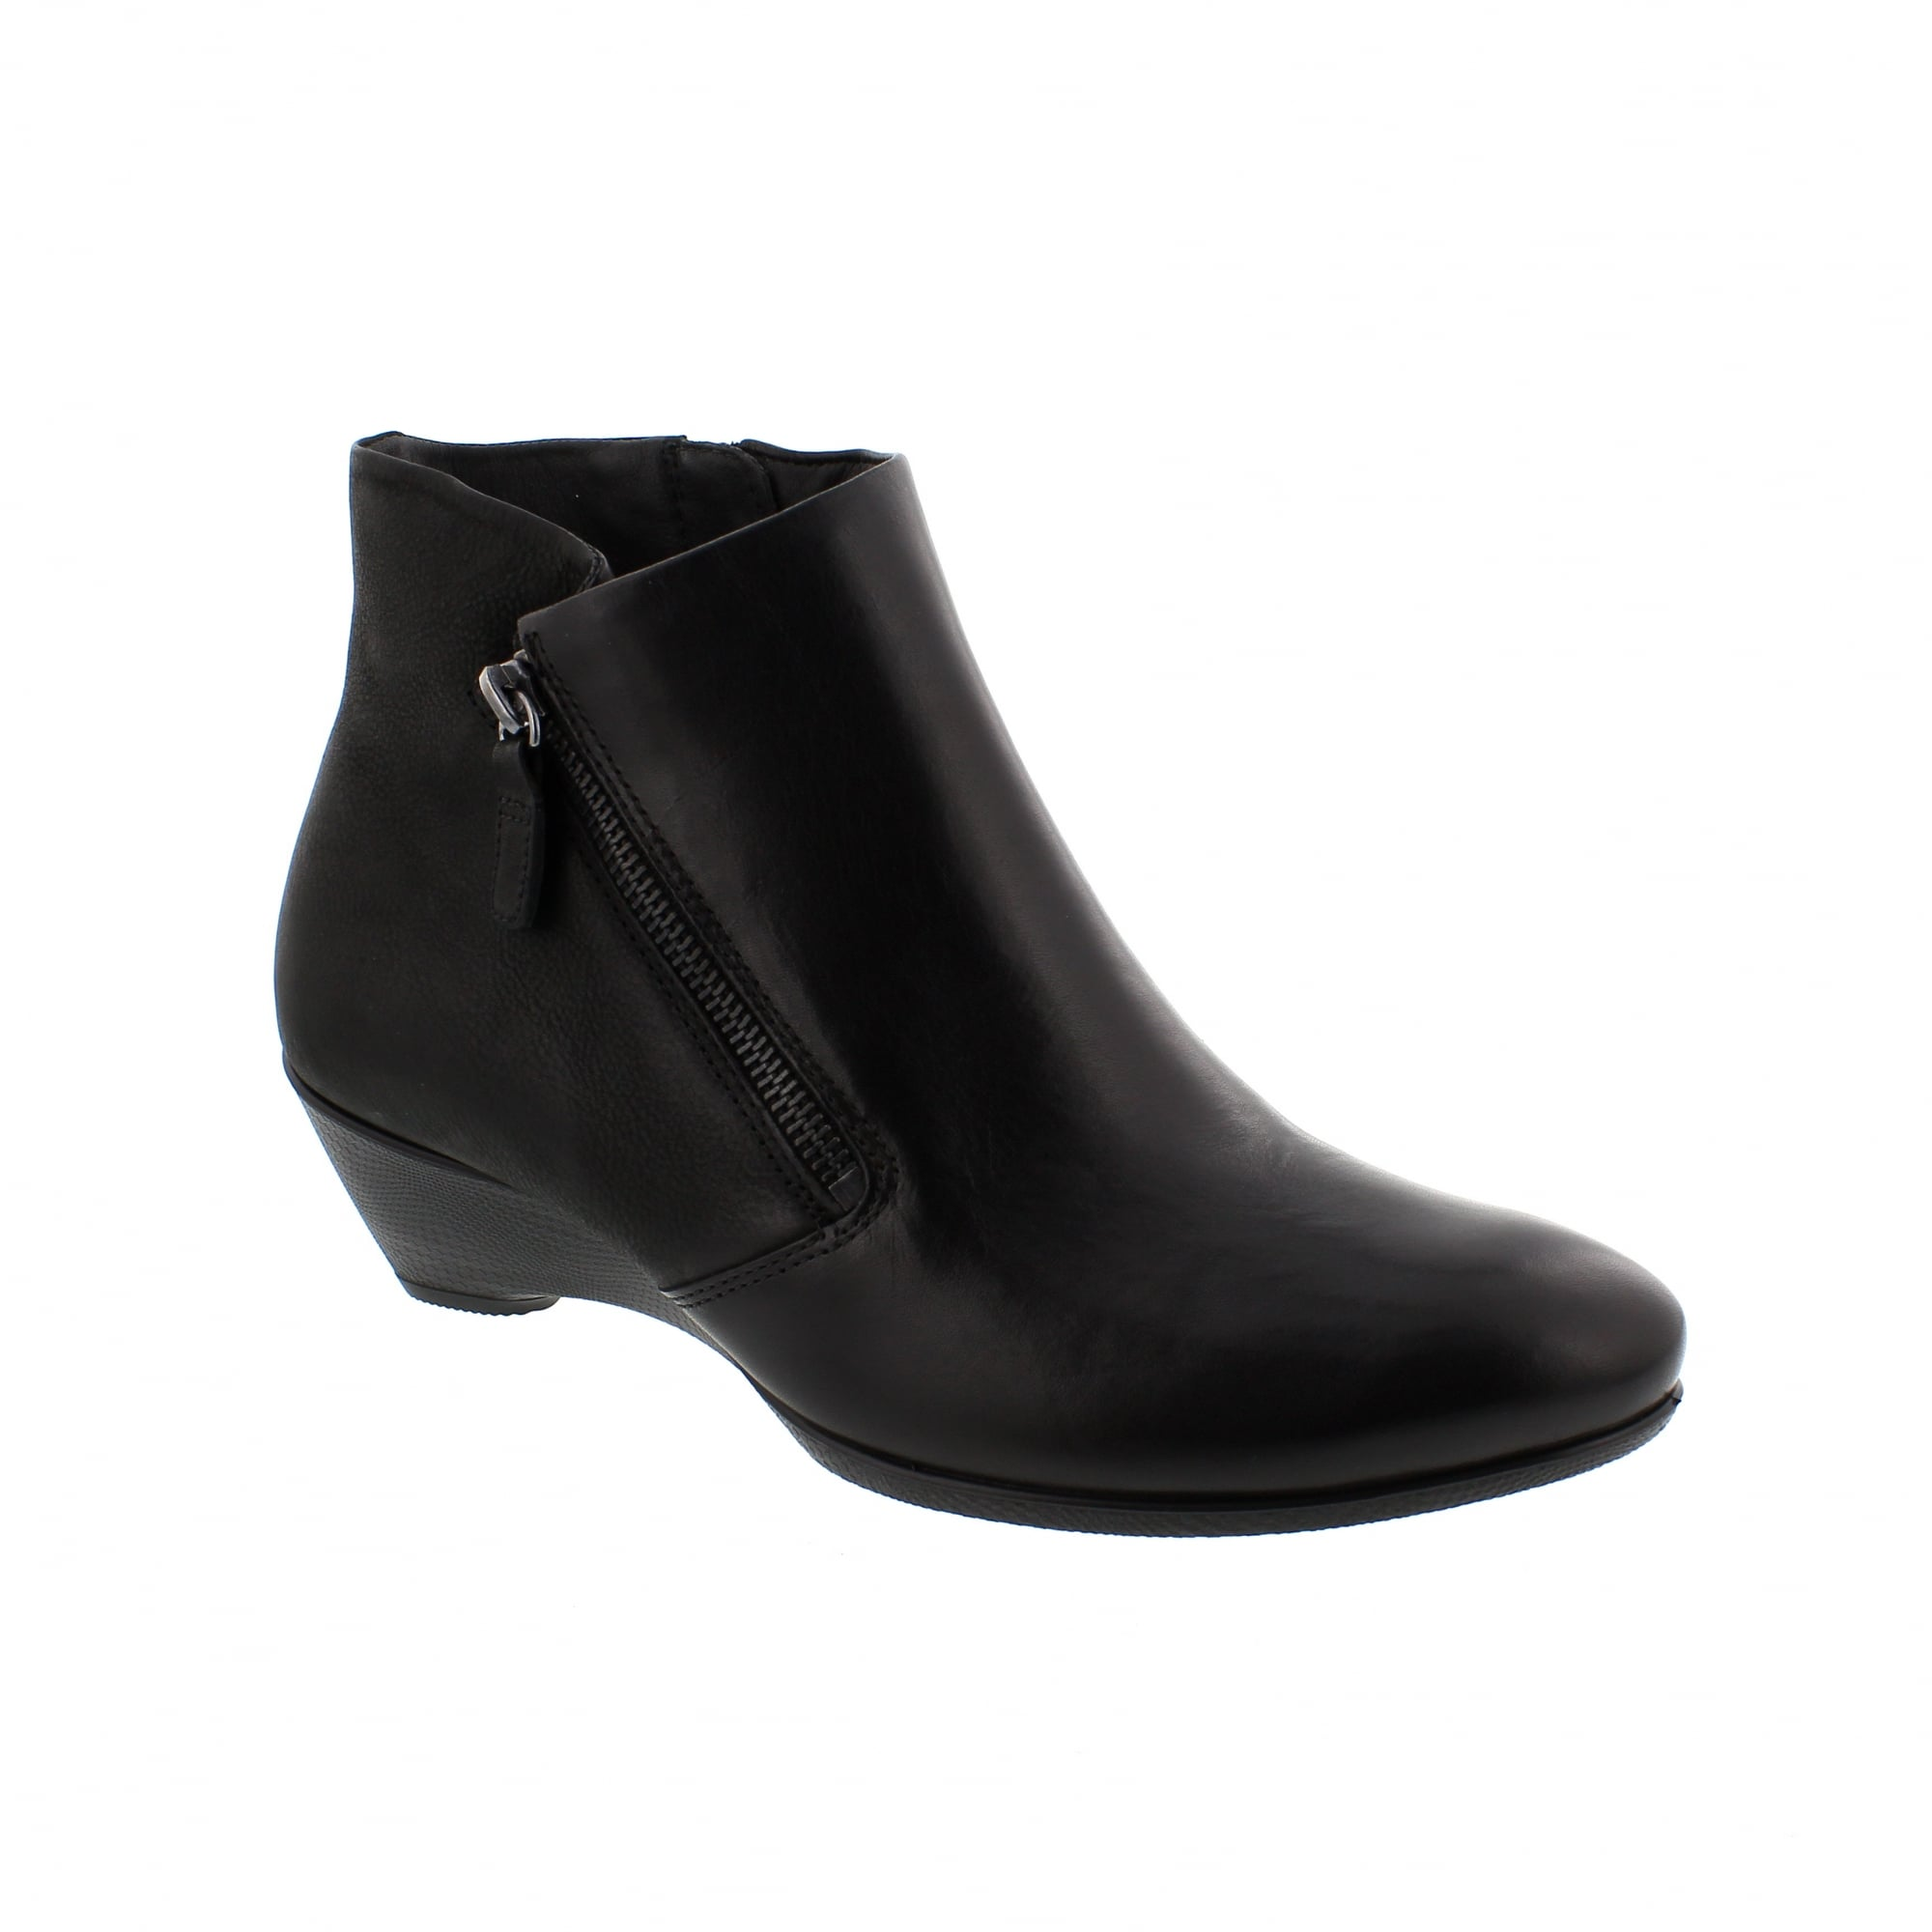 b991560edc7c Ecco Sculptured 45 270043-51052 Womens Ankle Boots